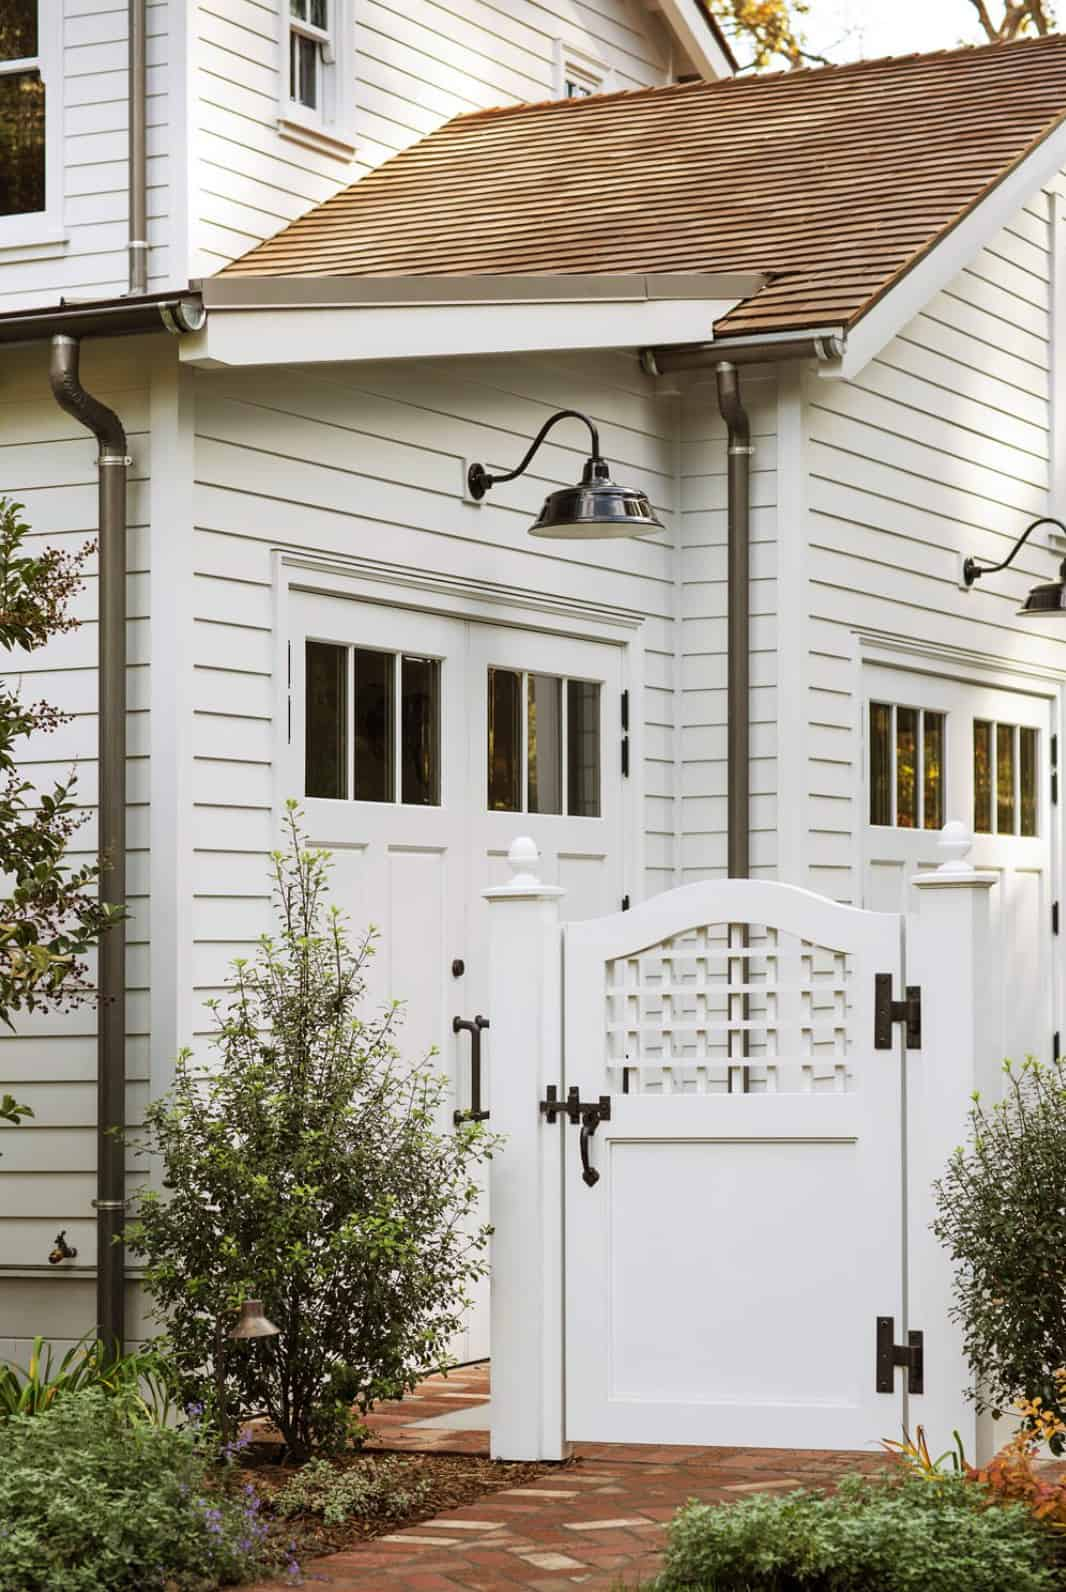 entrance-to-the-attached-garage-and-driveway-from-the-lawn